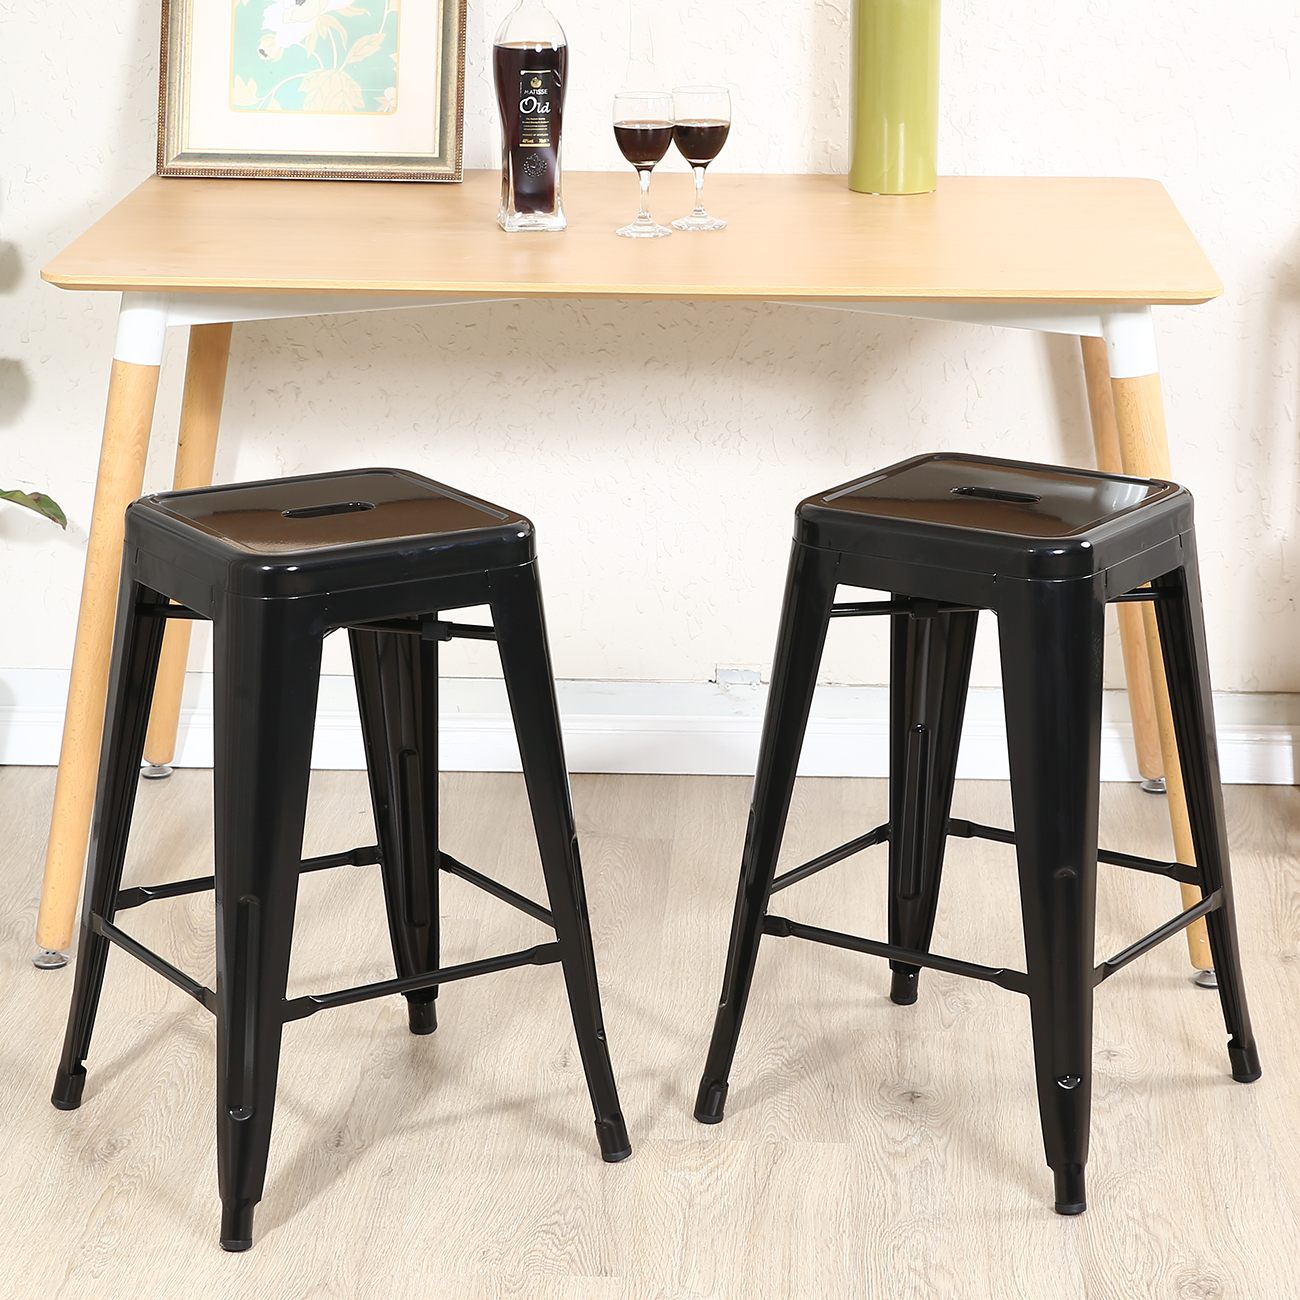 Bar And Stools For Home Set Of 2 Metal Bar Stool Counter Height Home 24 Quot 26 Quot 30